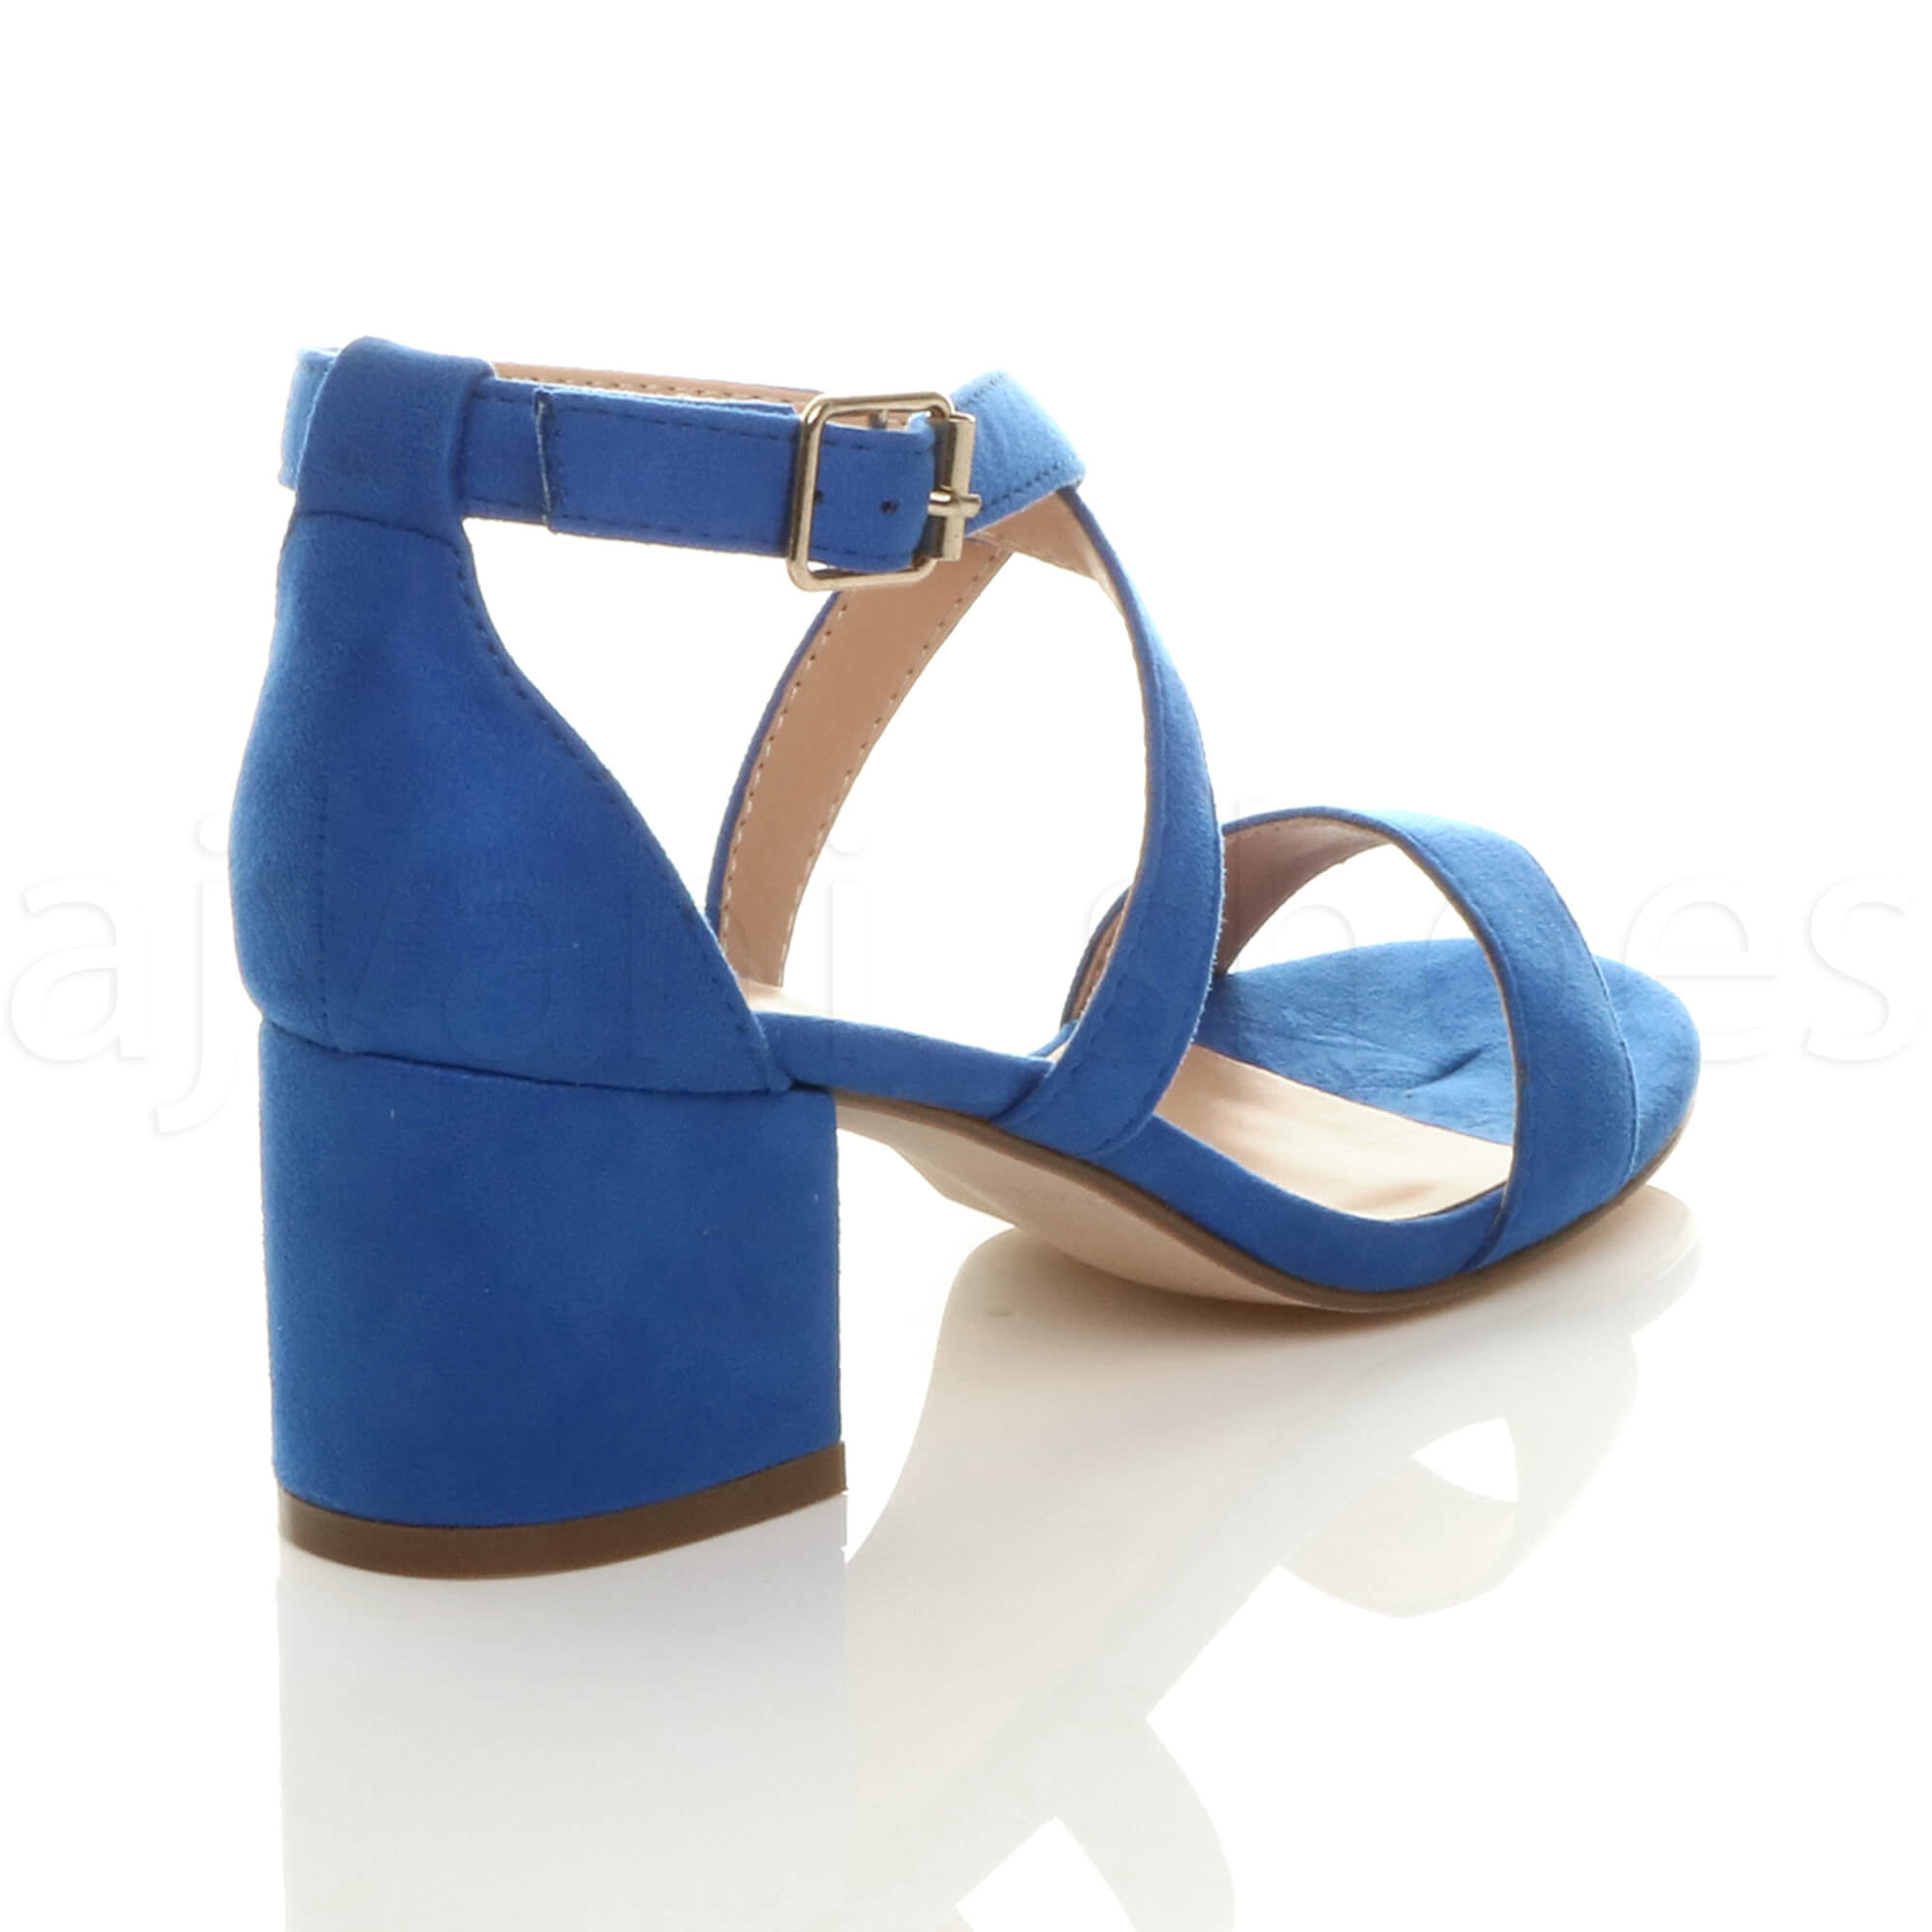 WOMENS-LADIES-MID-LOW-BLOCK-HEEL-CROSS-STRAPS-PARTY-STRAPPY-SANDALS-SHOES-SIZE thumbnail 15